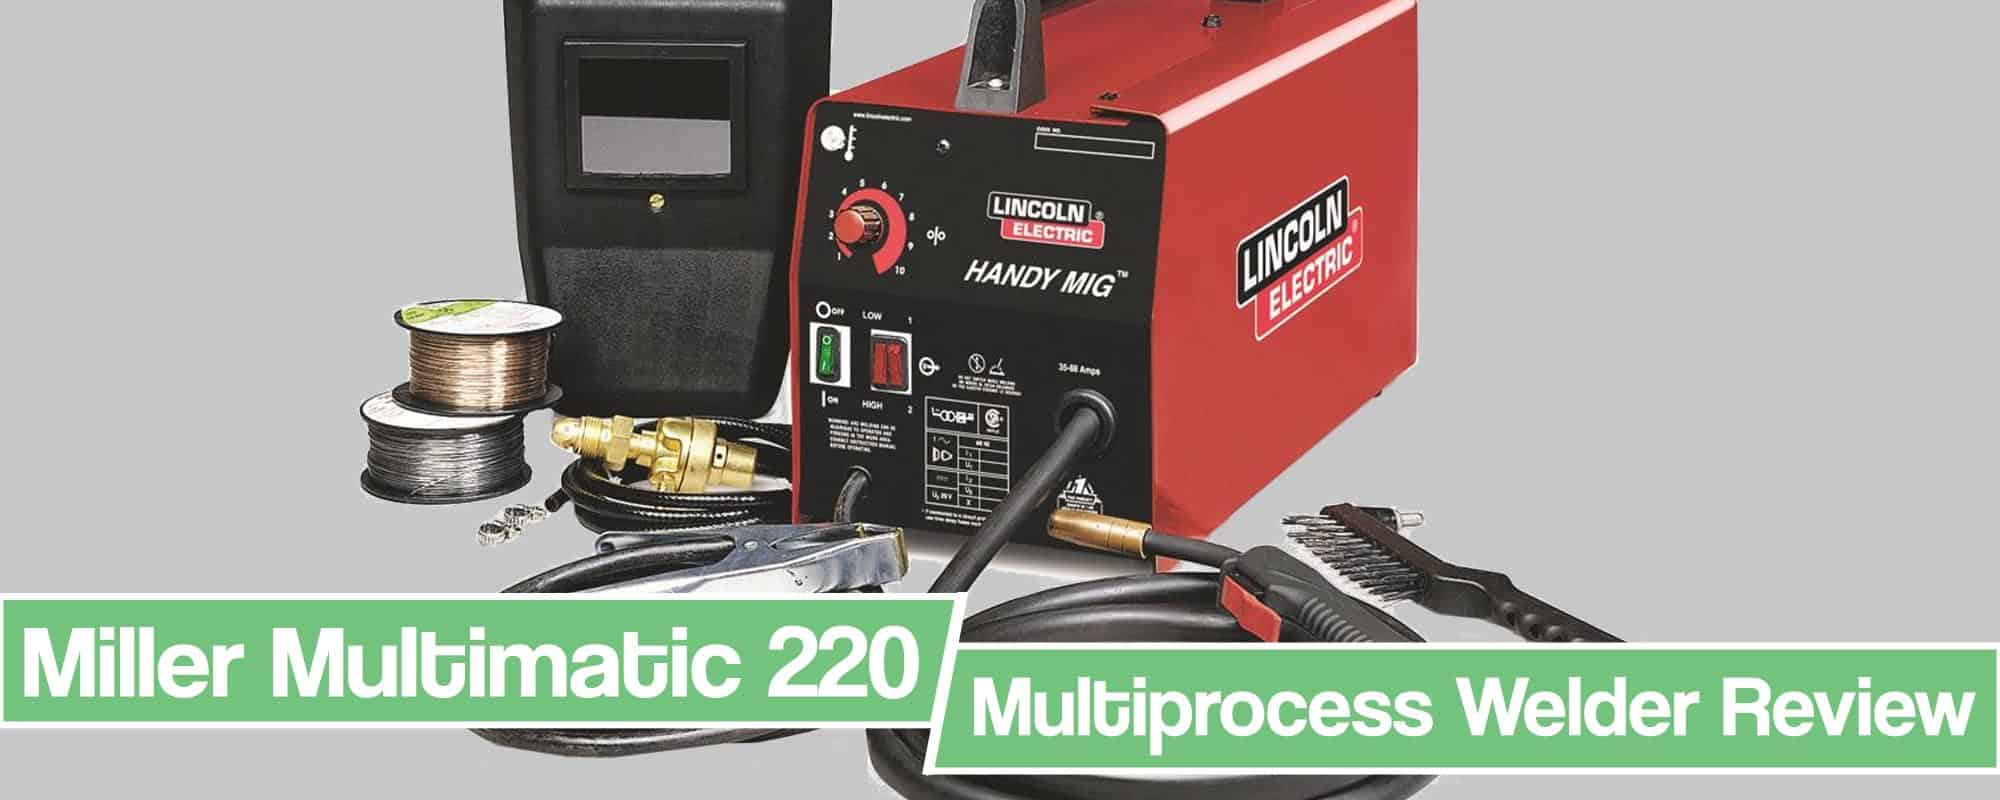 Feature image for Lincoln Electric K2185-1 Review article